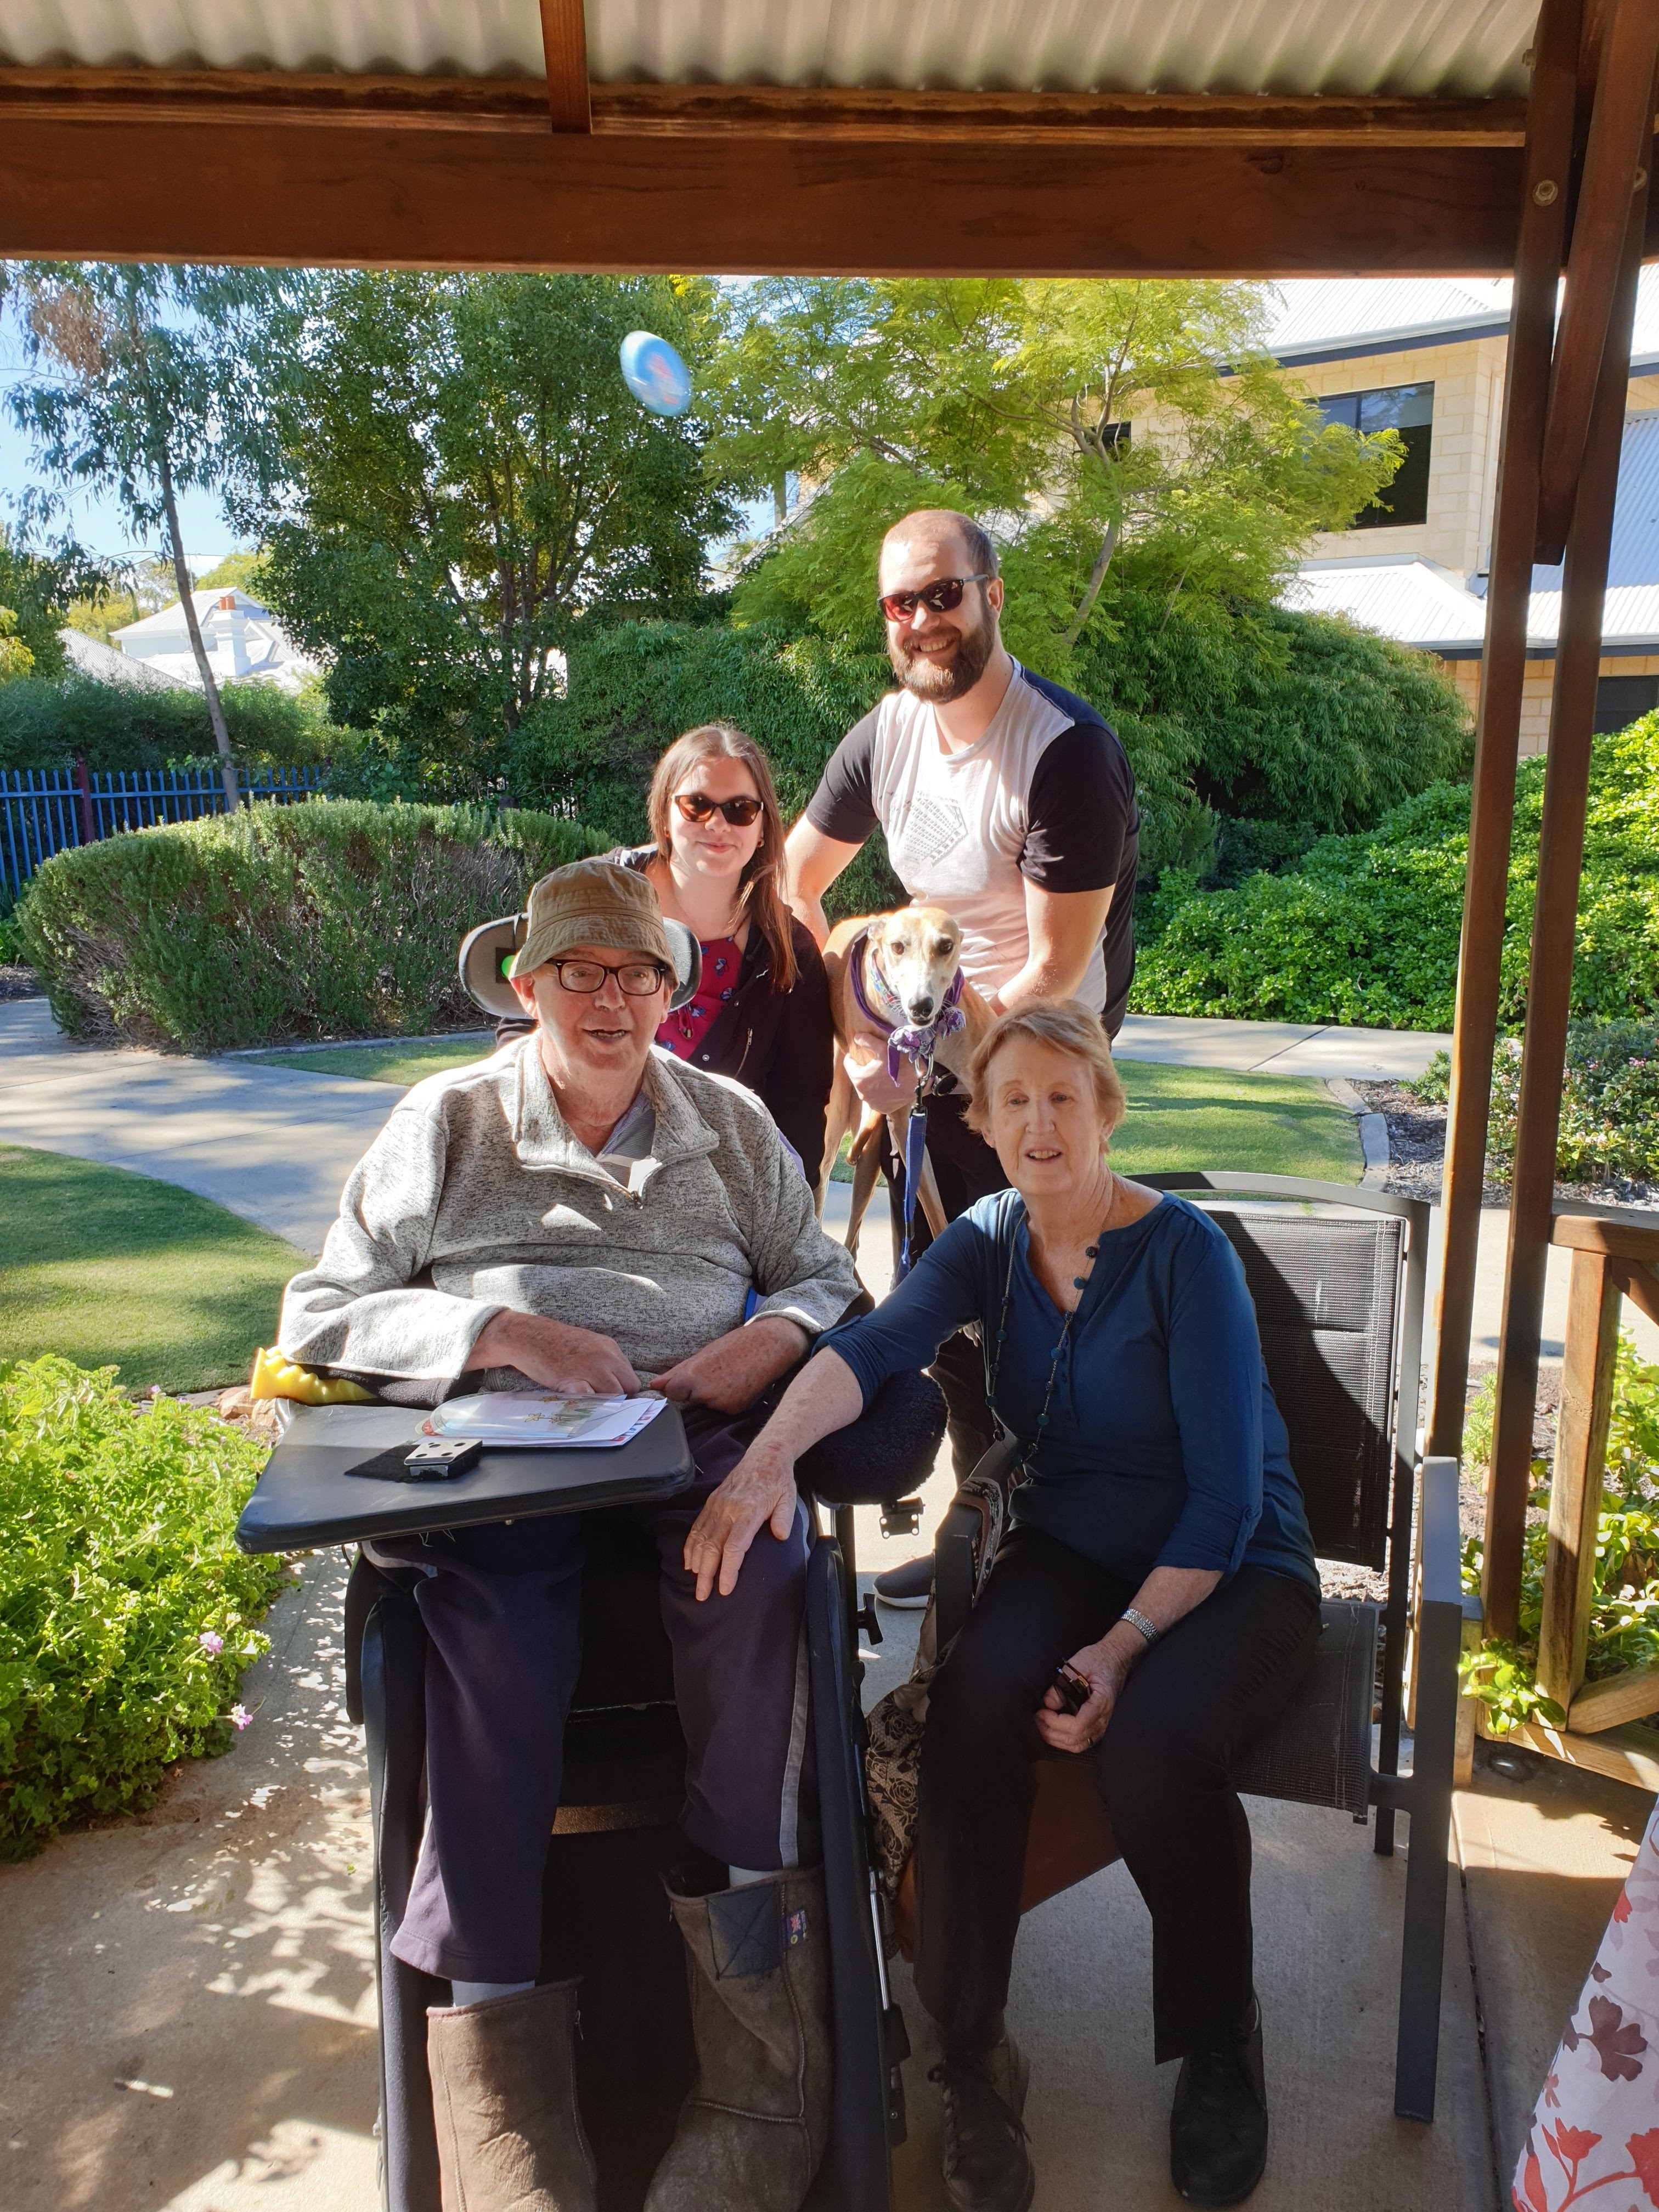 Family of four, 2 males (one in a wheelchair) and 2 females (one seated in a chair next to male in wheelchair) posing outside with their pet greyhound